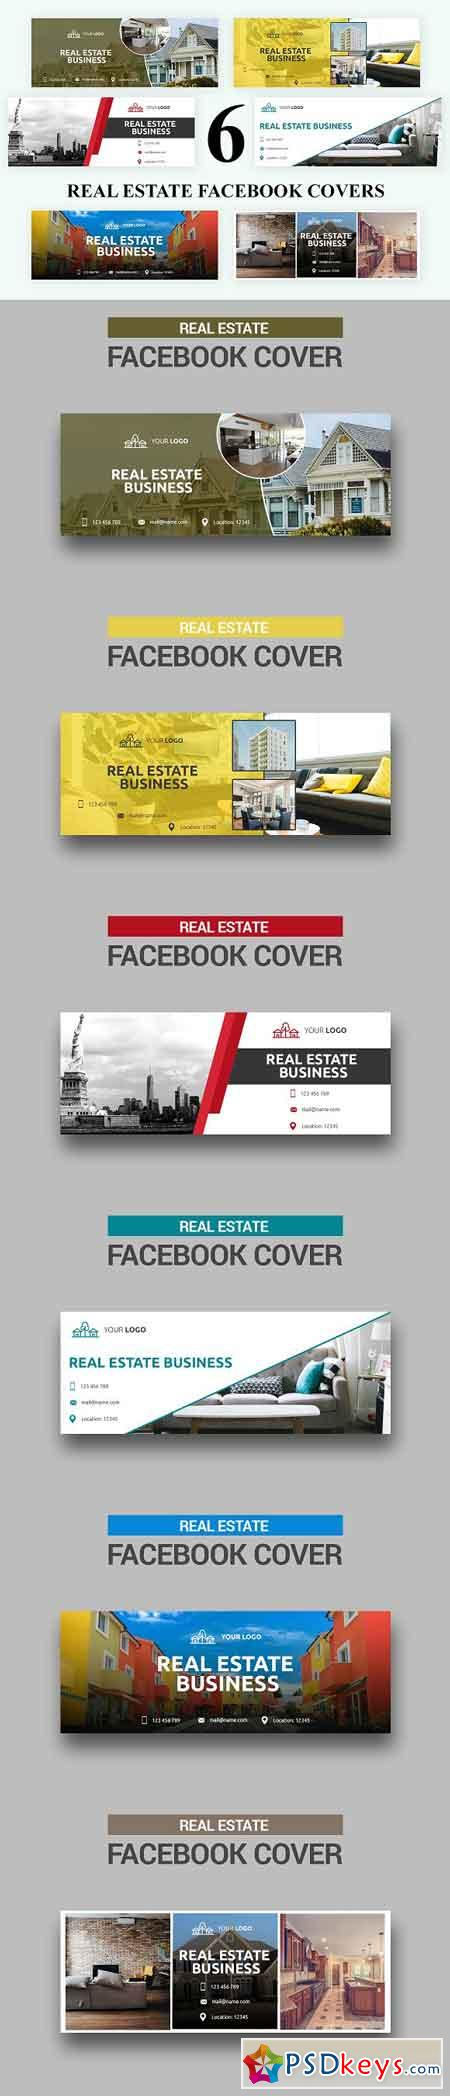 Real Estate Facebook Covers - SK 3032990